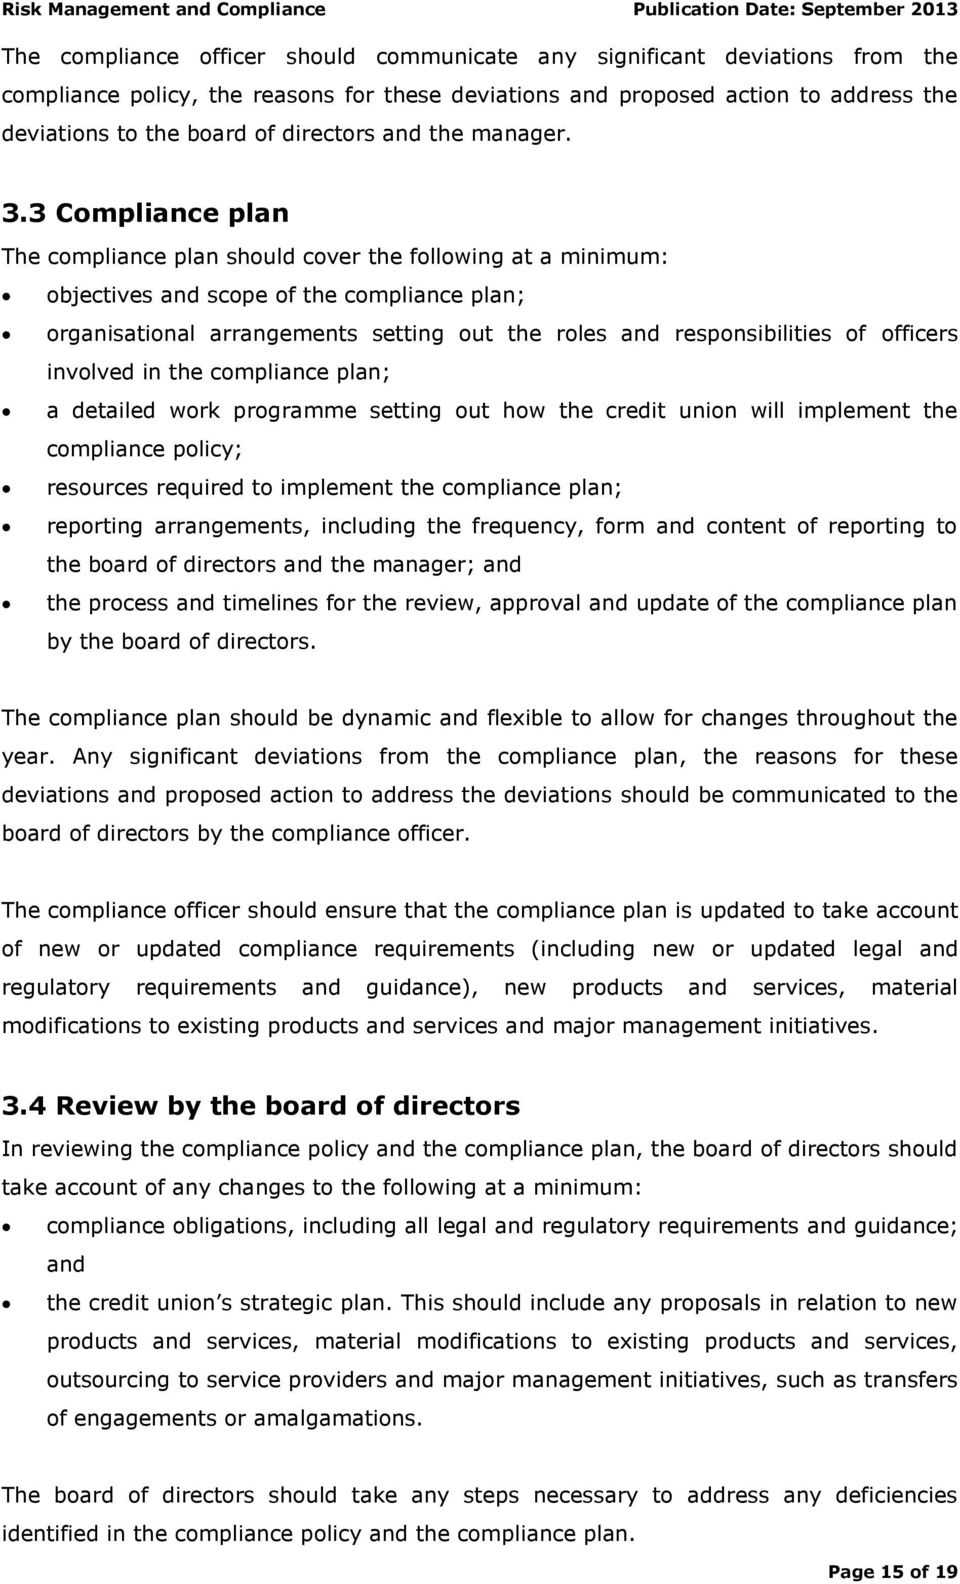 3 Compliance plan The compliance plan should cover the following at a minimum: objectives and scope of the compliance plan; organisational arrangements setting out the roles and responsibilities of